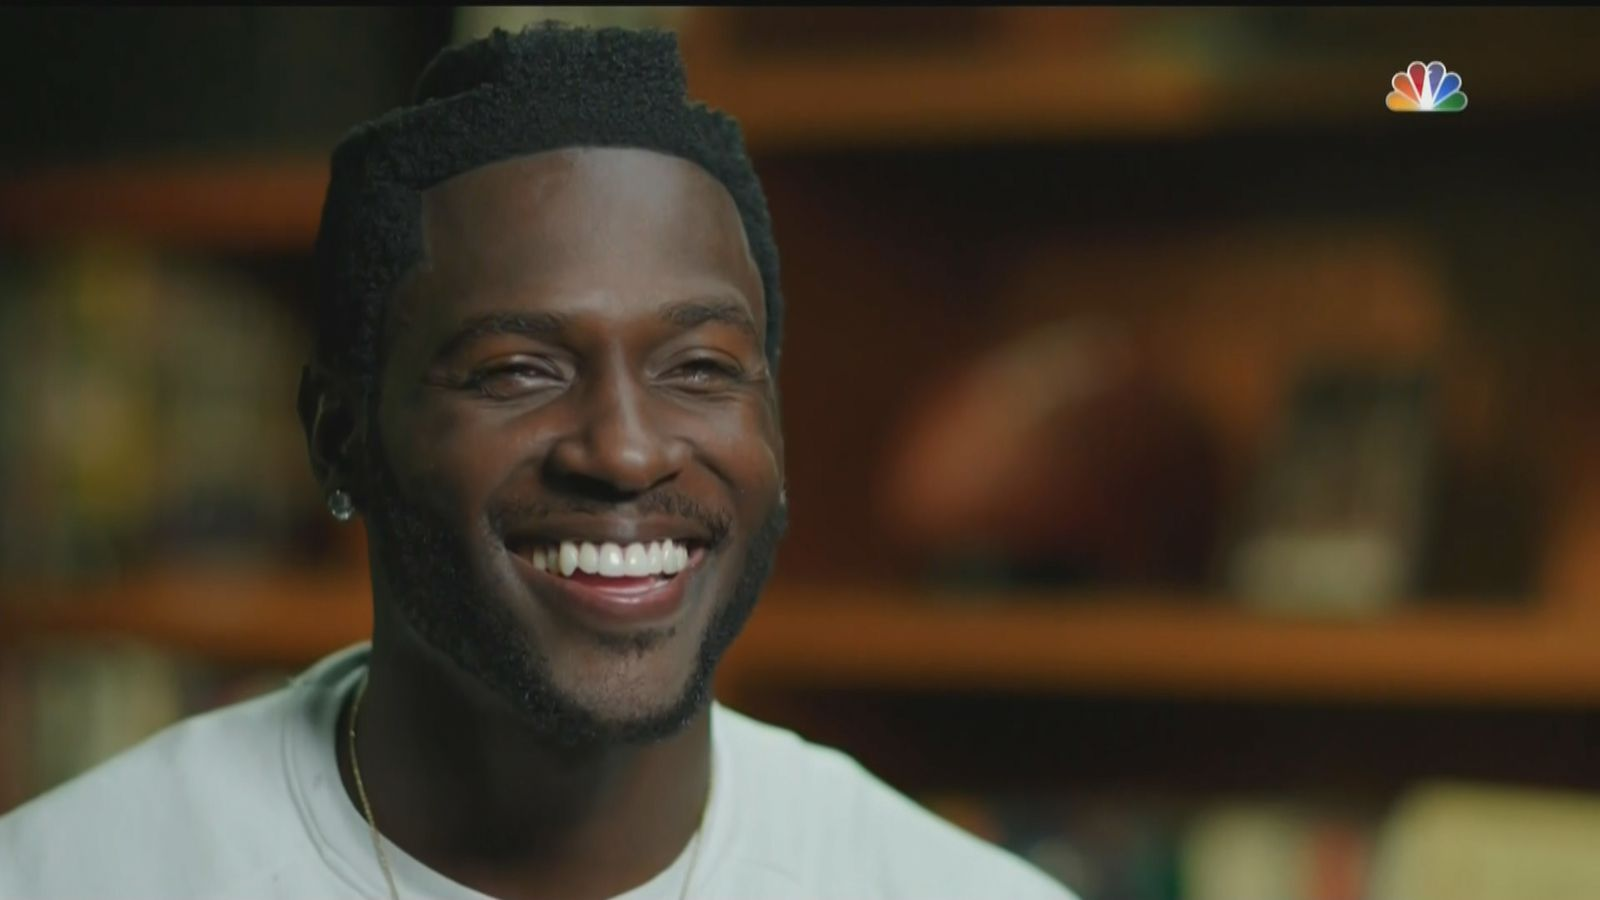 Thankfully Antonio Brown Plays Football And A Helmet Will